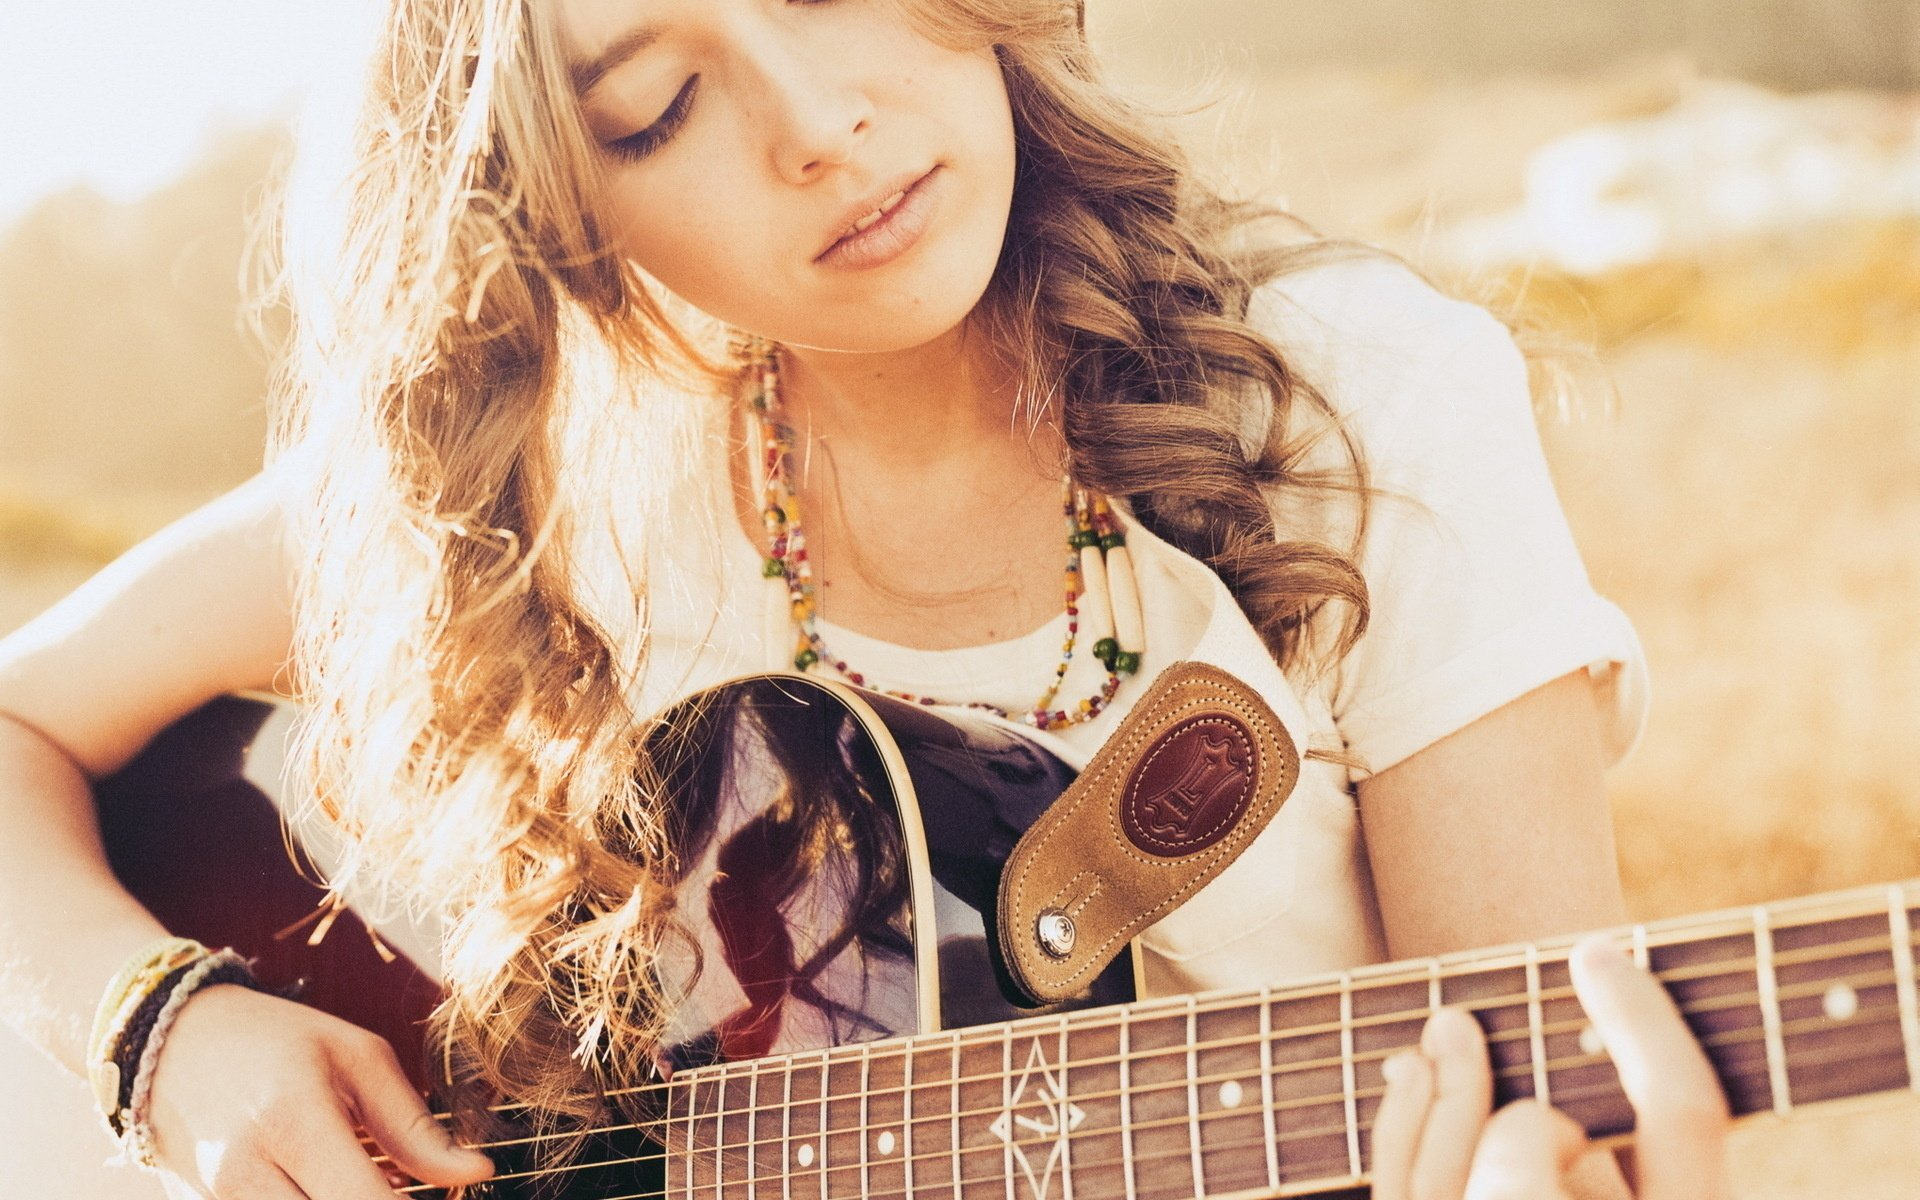 Do Men Find Females More Attractive If They Play Guitar Or Appear To Look As